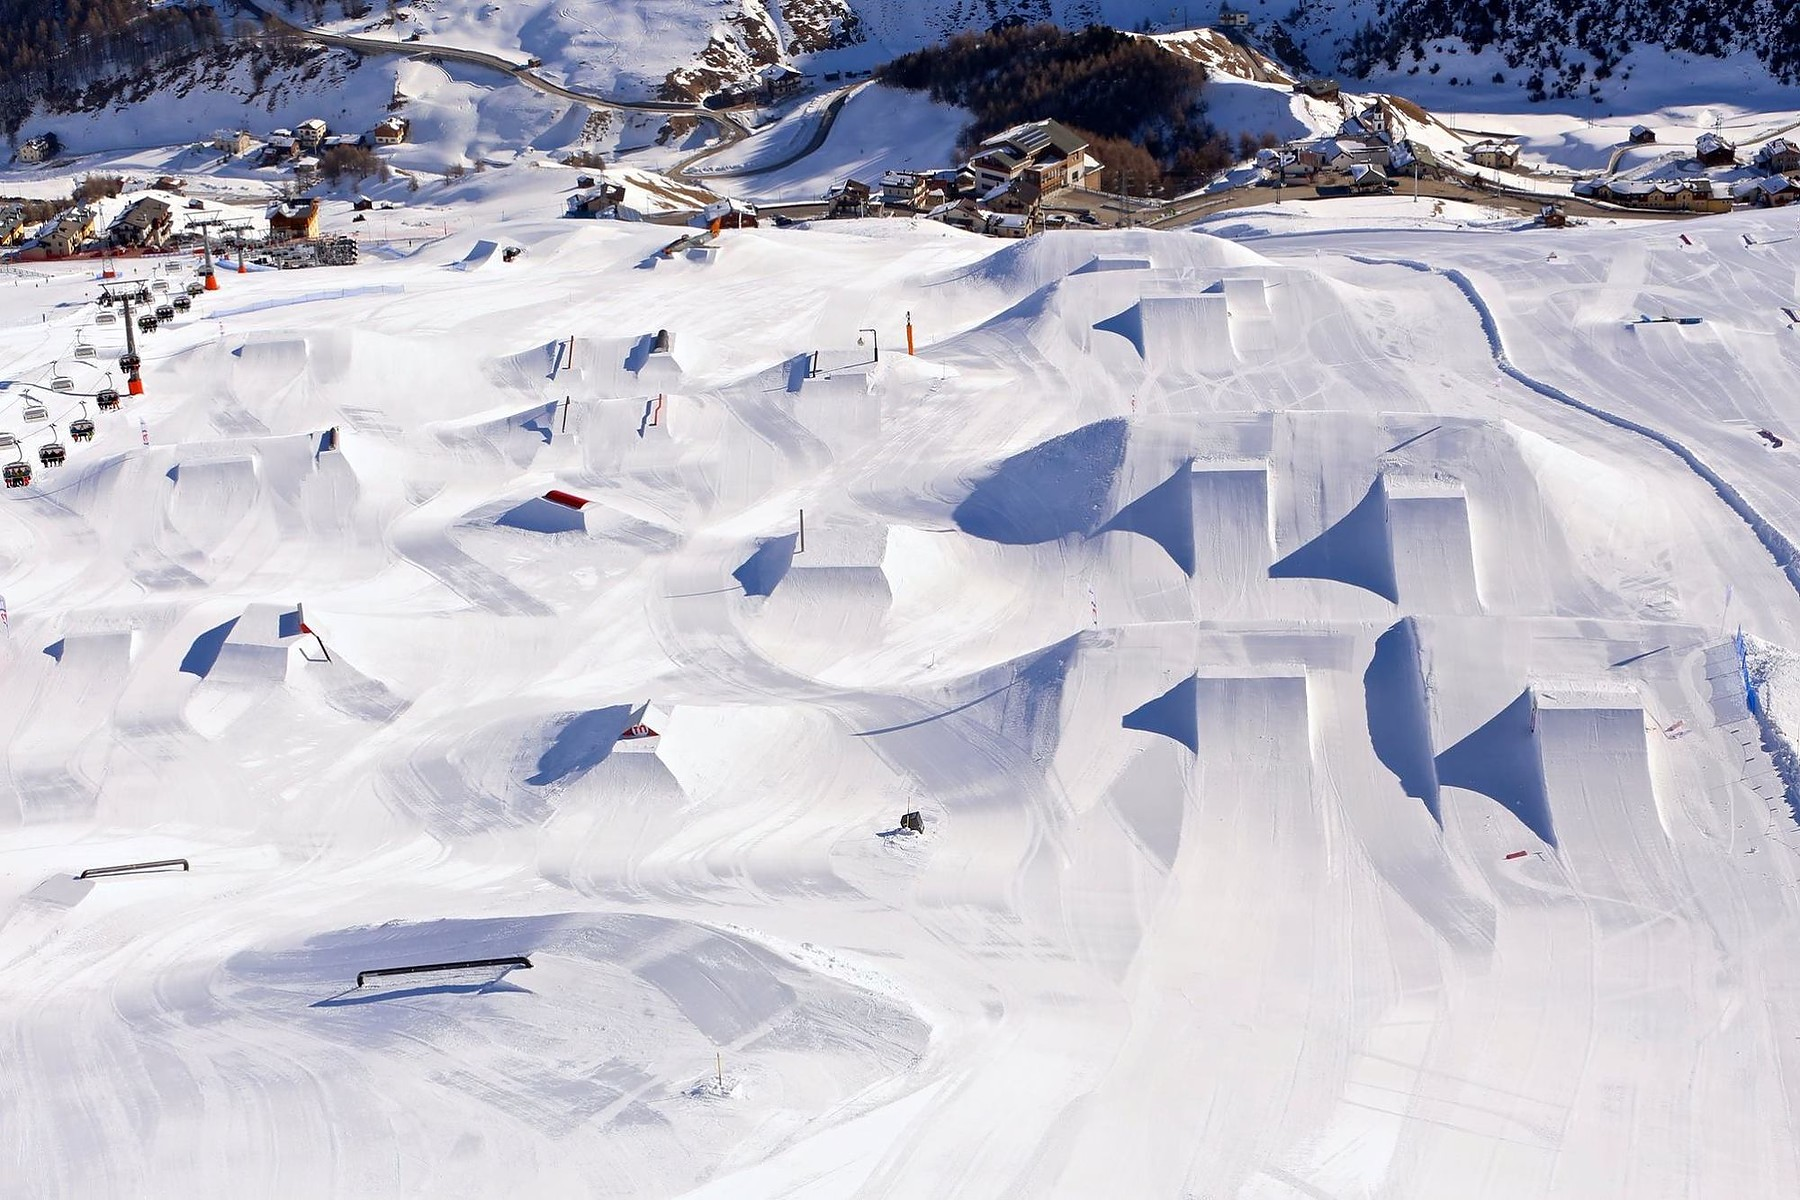 Livigno slopes and fun parks snowy landscapes winter sports facilities